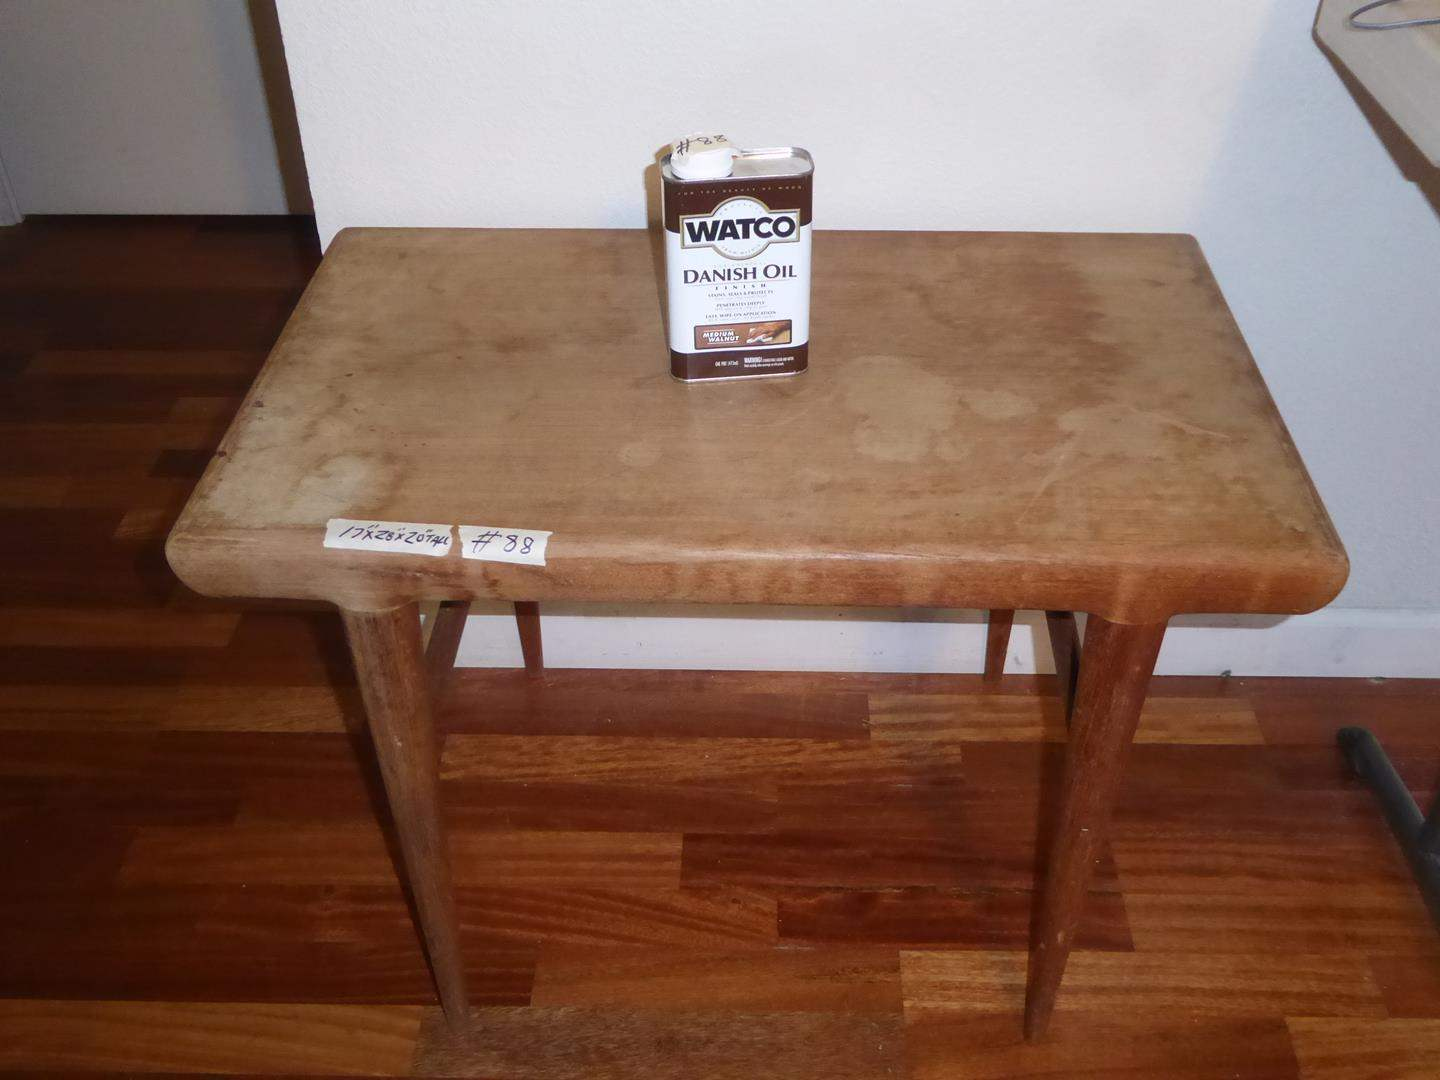 Lot # 88 - Vintage Mid Century Silkeborg Danish End Table & Danish Oil (main image)